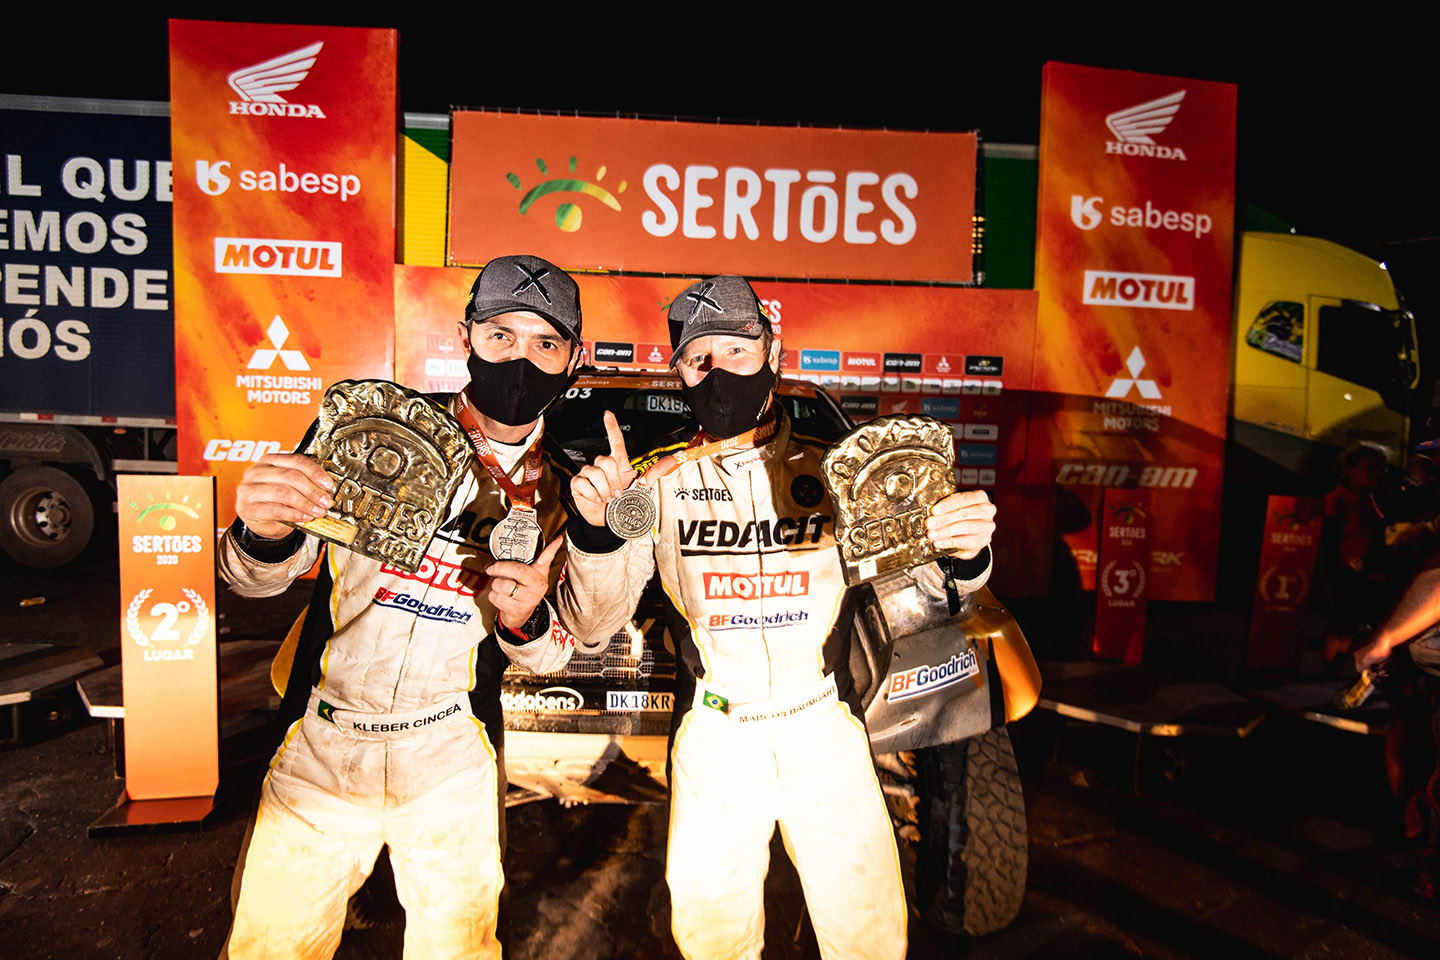 X Rally Team supremacy: Baumgart/Cincea win the Sertões for the first time in team's 1-2-3